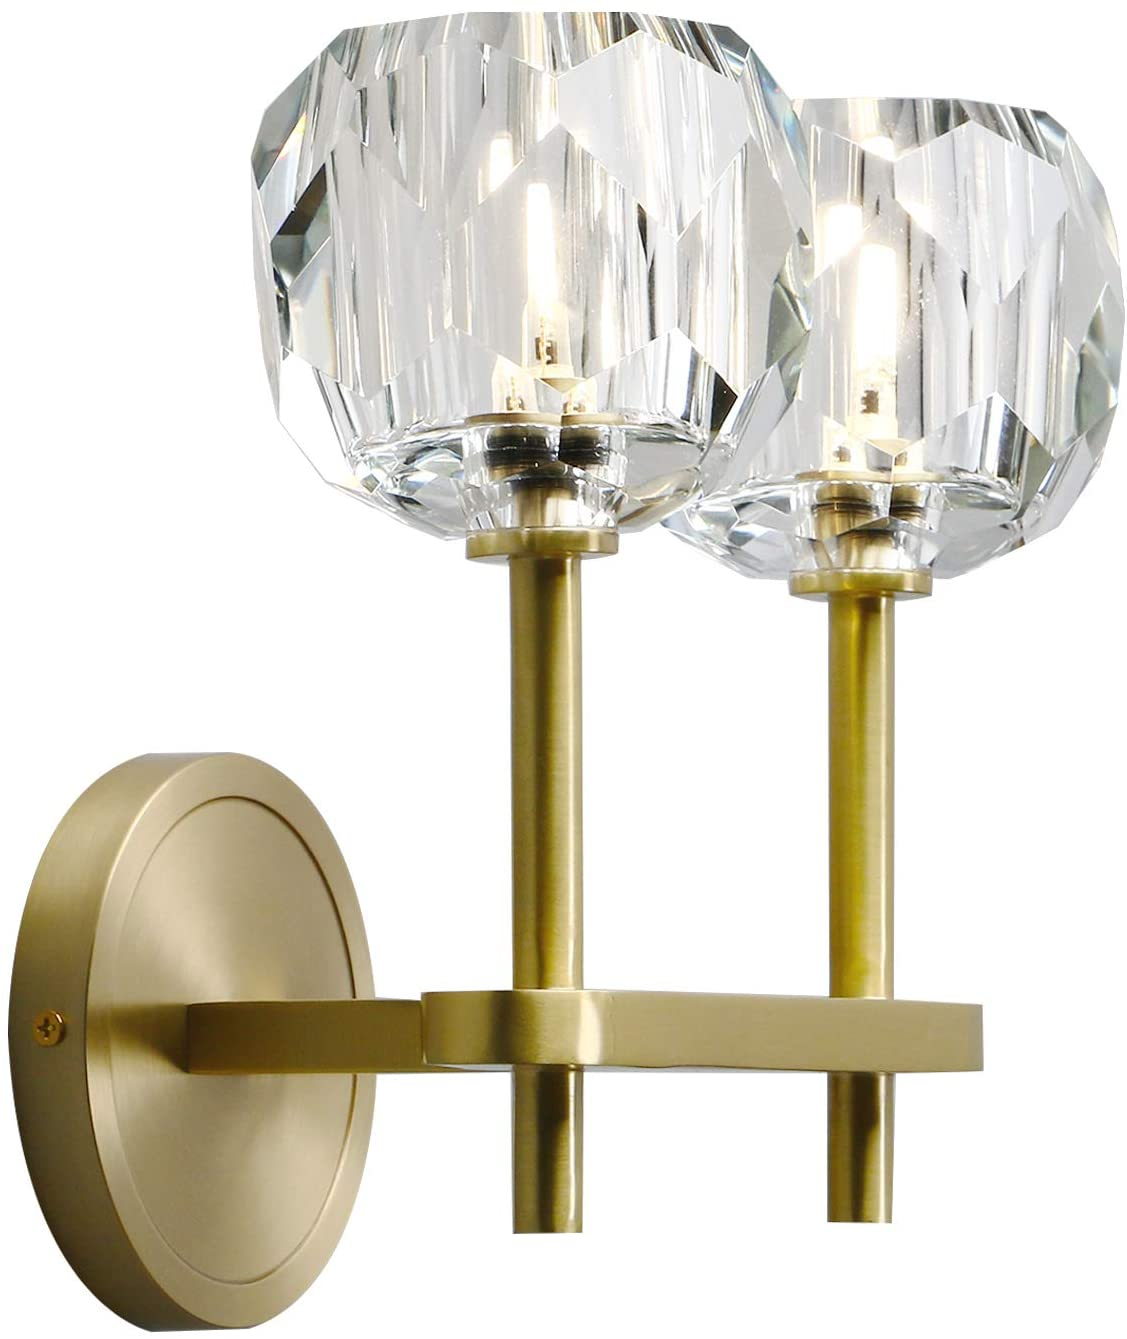 Phansthy 2 Light Sconce Antique Brass Bathroom Vanity Light with 3.9 Inches Globe Crystal Light Shade for Bedside Kitchen Bedroom Bathroom (2 Light)